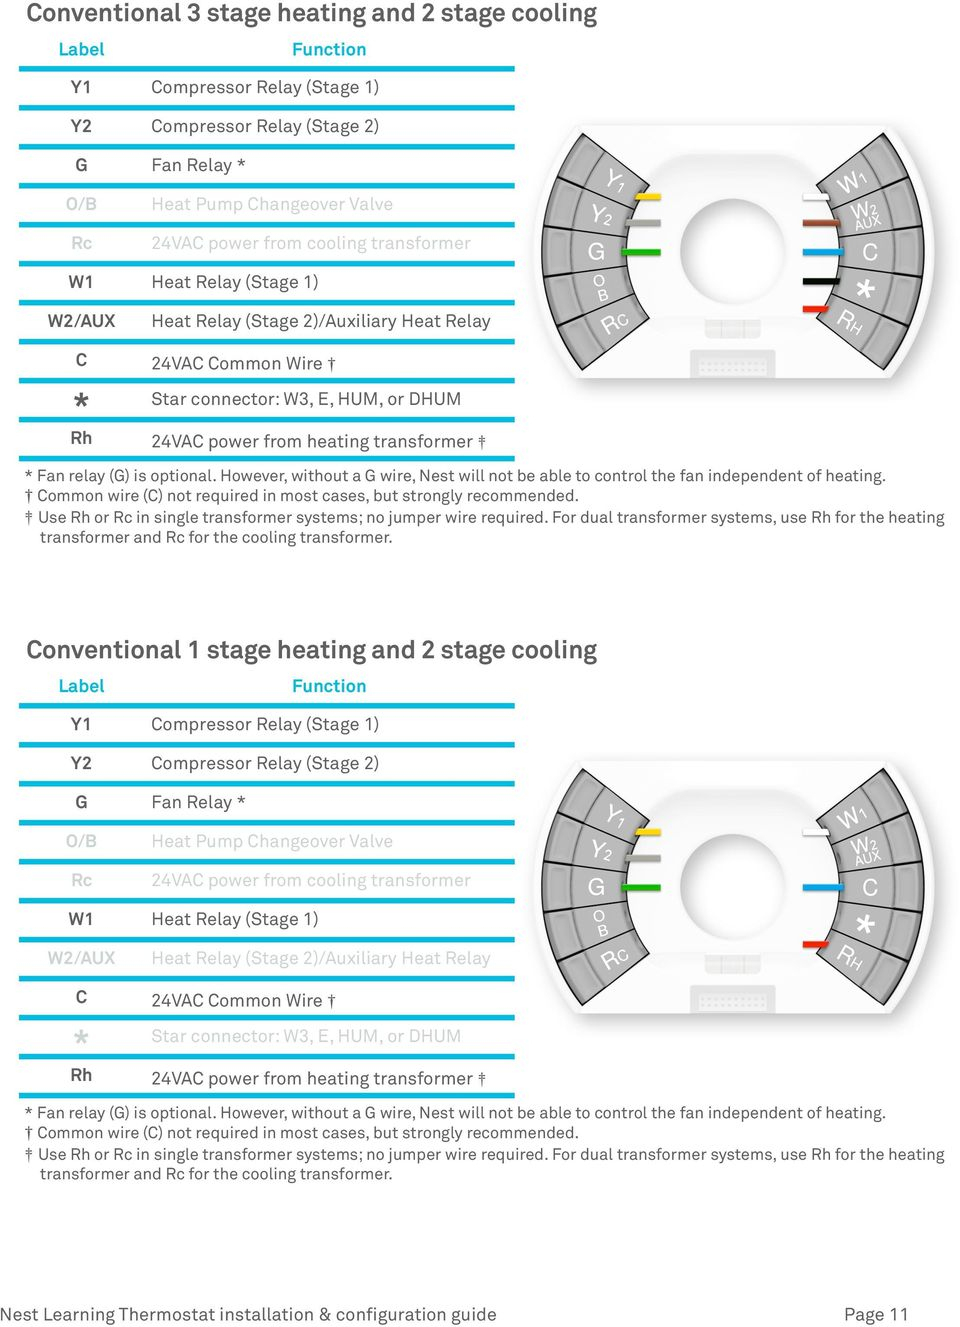 Nest Learning Thermostat Pro Installation & Configuration Guide - Pdf - Nest Thermostat Wiring Diagram To Transformer